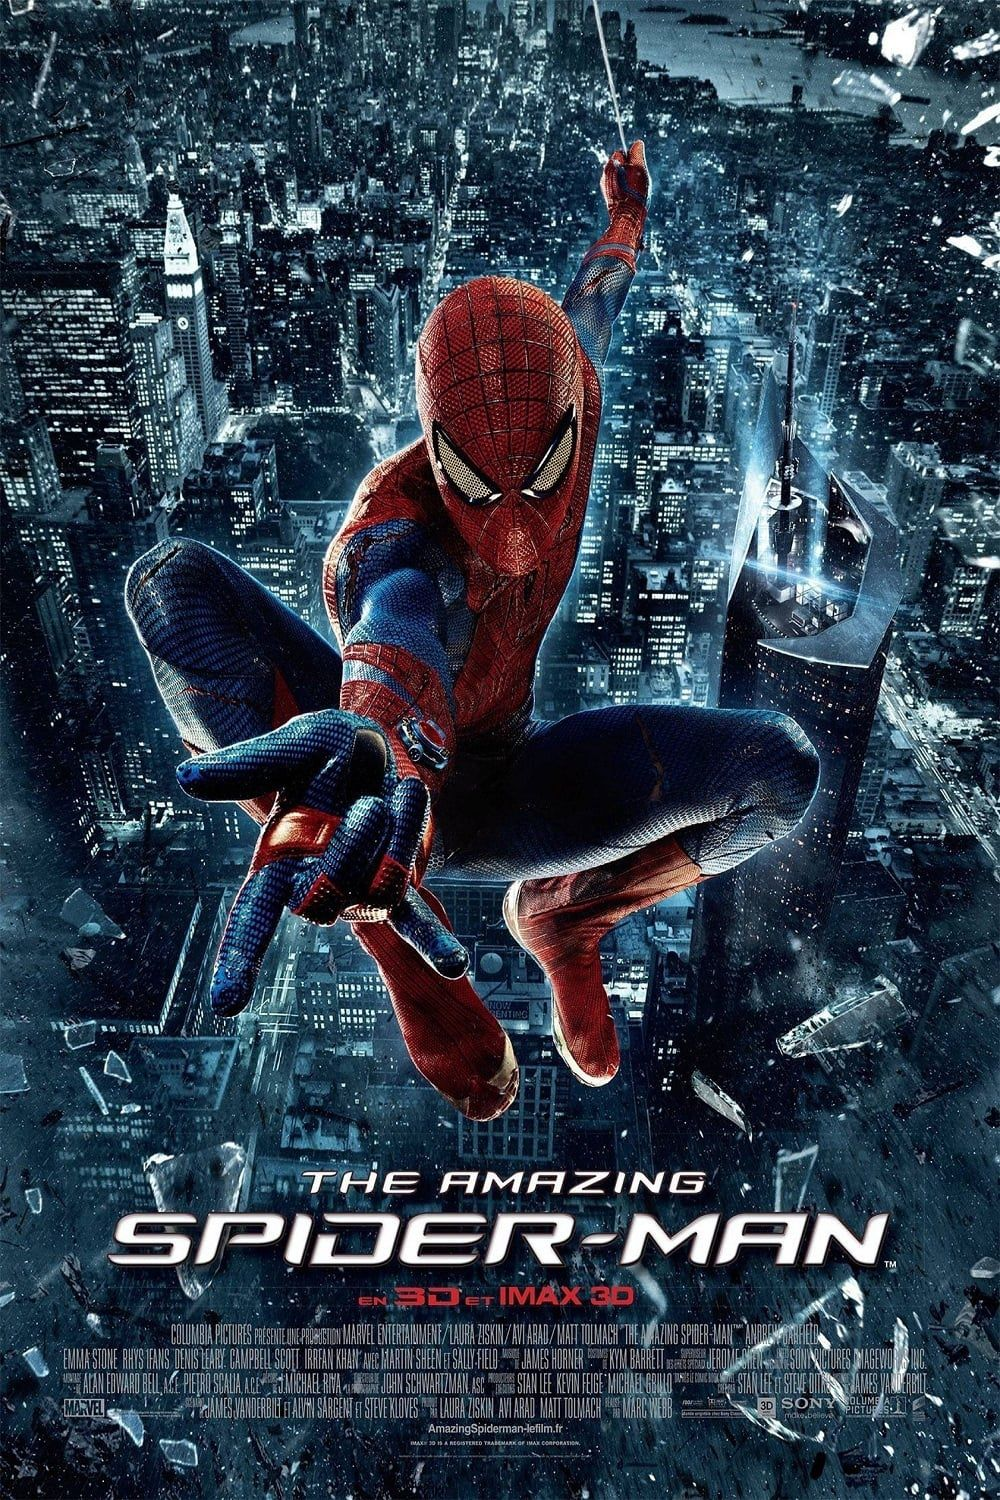 affiche poster amazing spider-man disney marvel